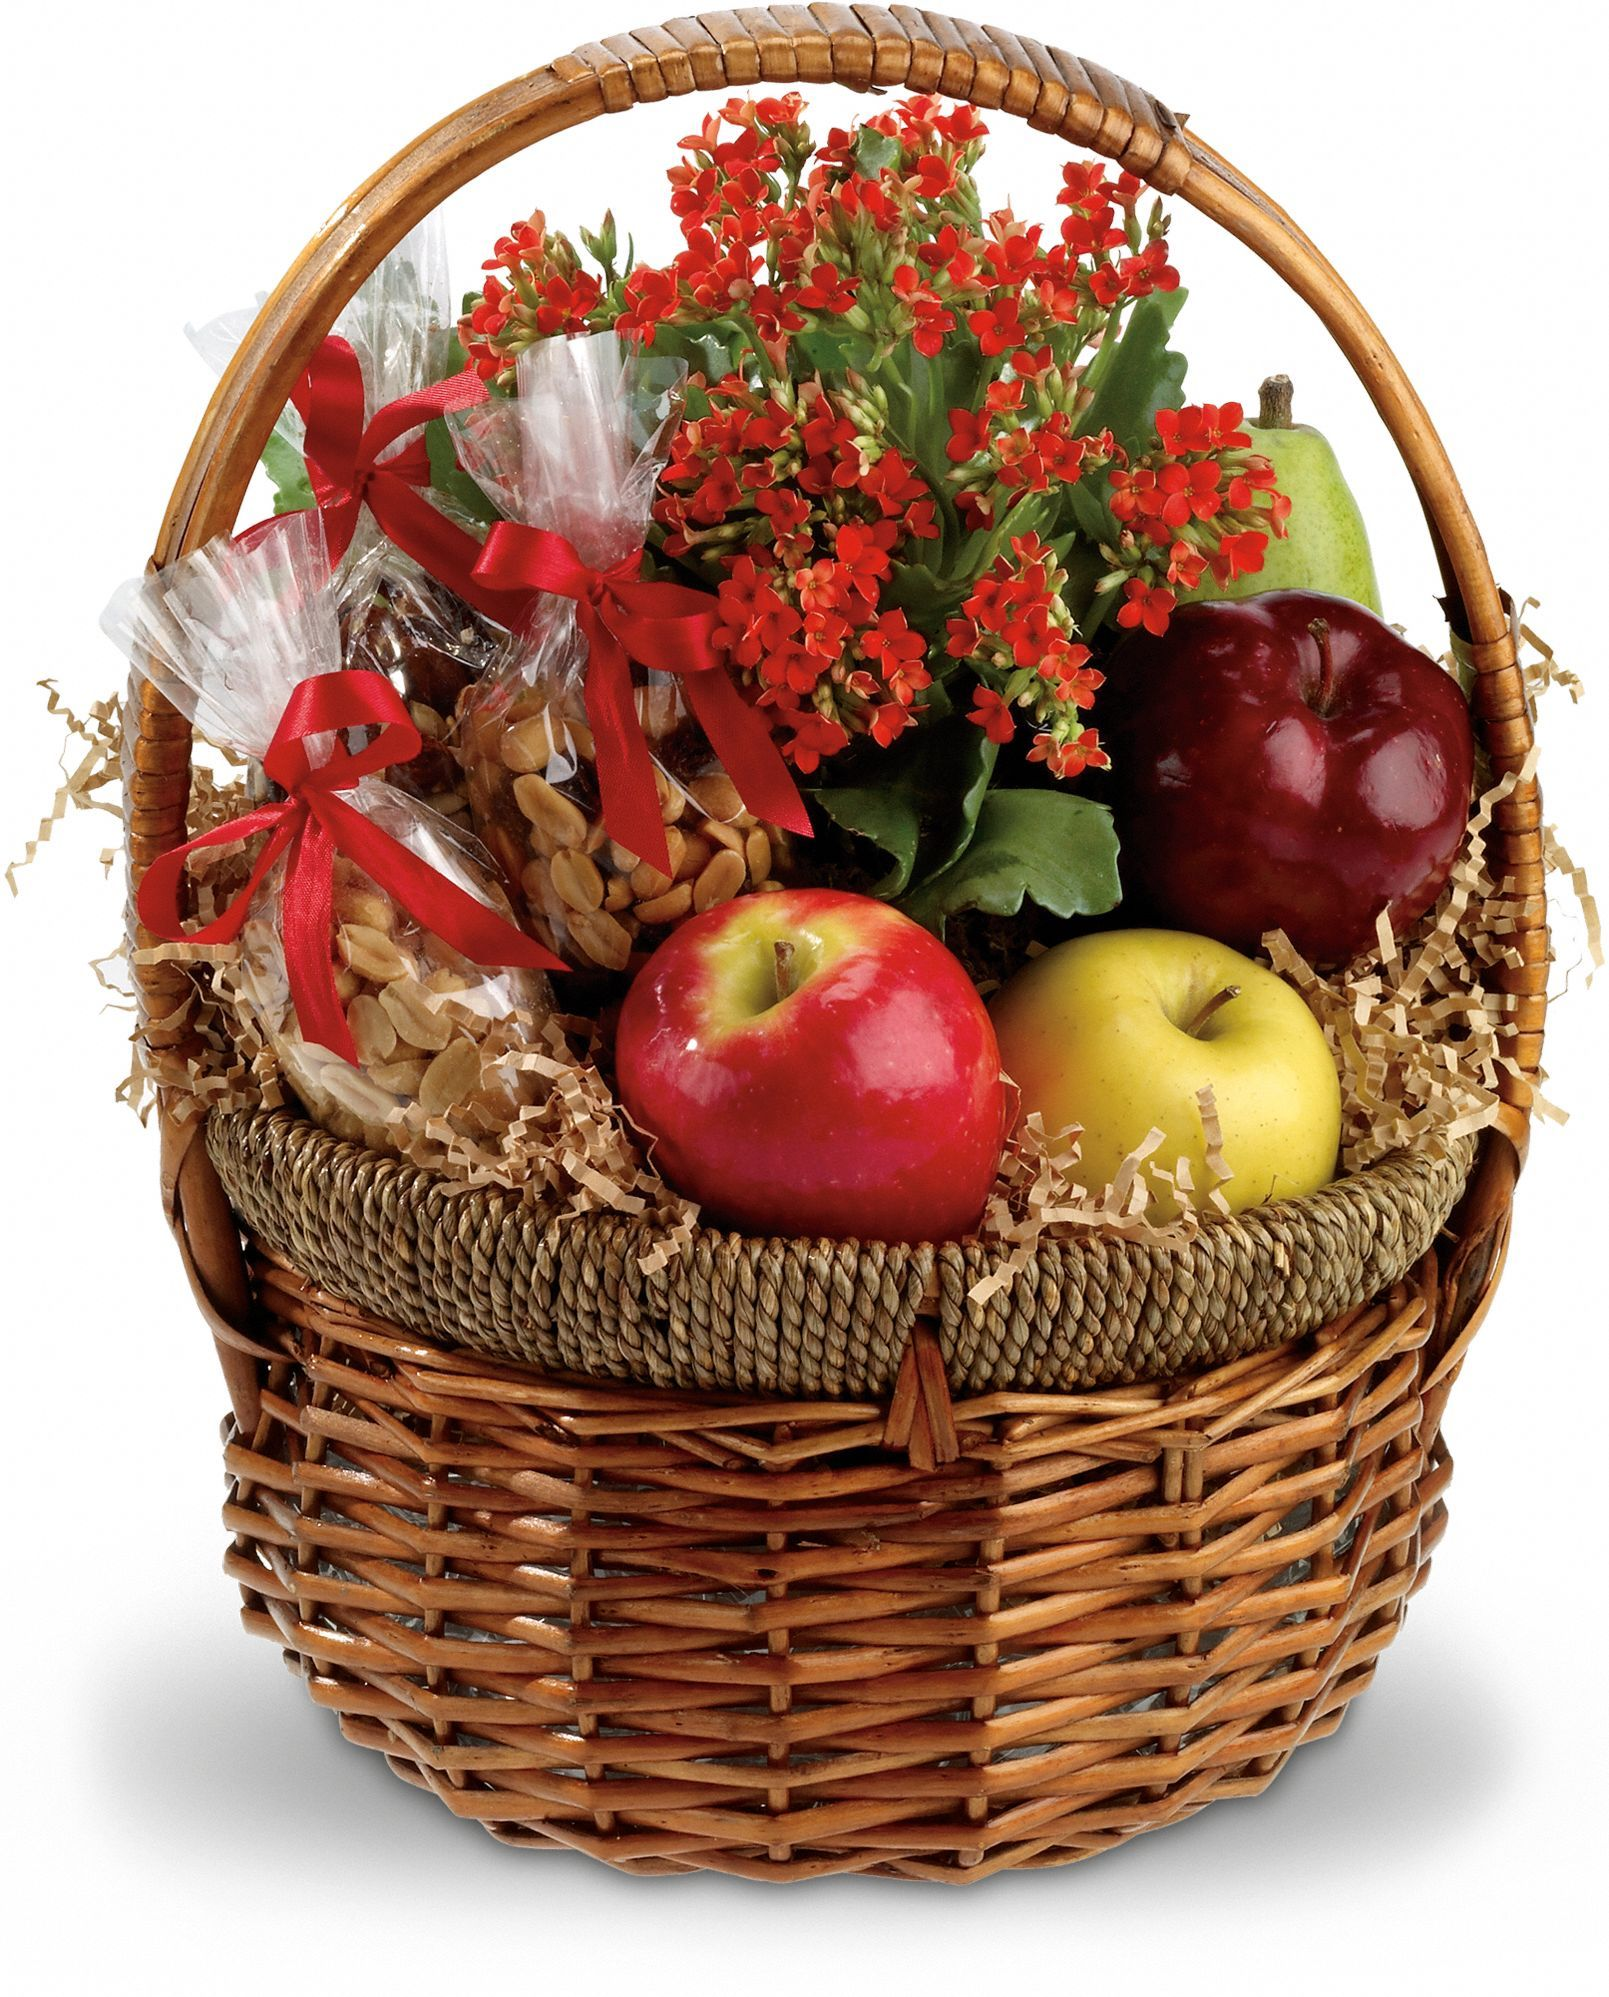 Health Nut Basket Save 25 On This Bouquet And Many Others With Coupon Code Tfmdayok1b2 Offer Expires 05 14 2 Nut Gift Basket Fruit Basket Gift Gourmet Baskets